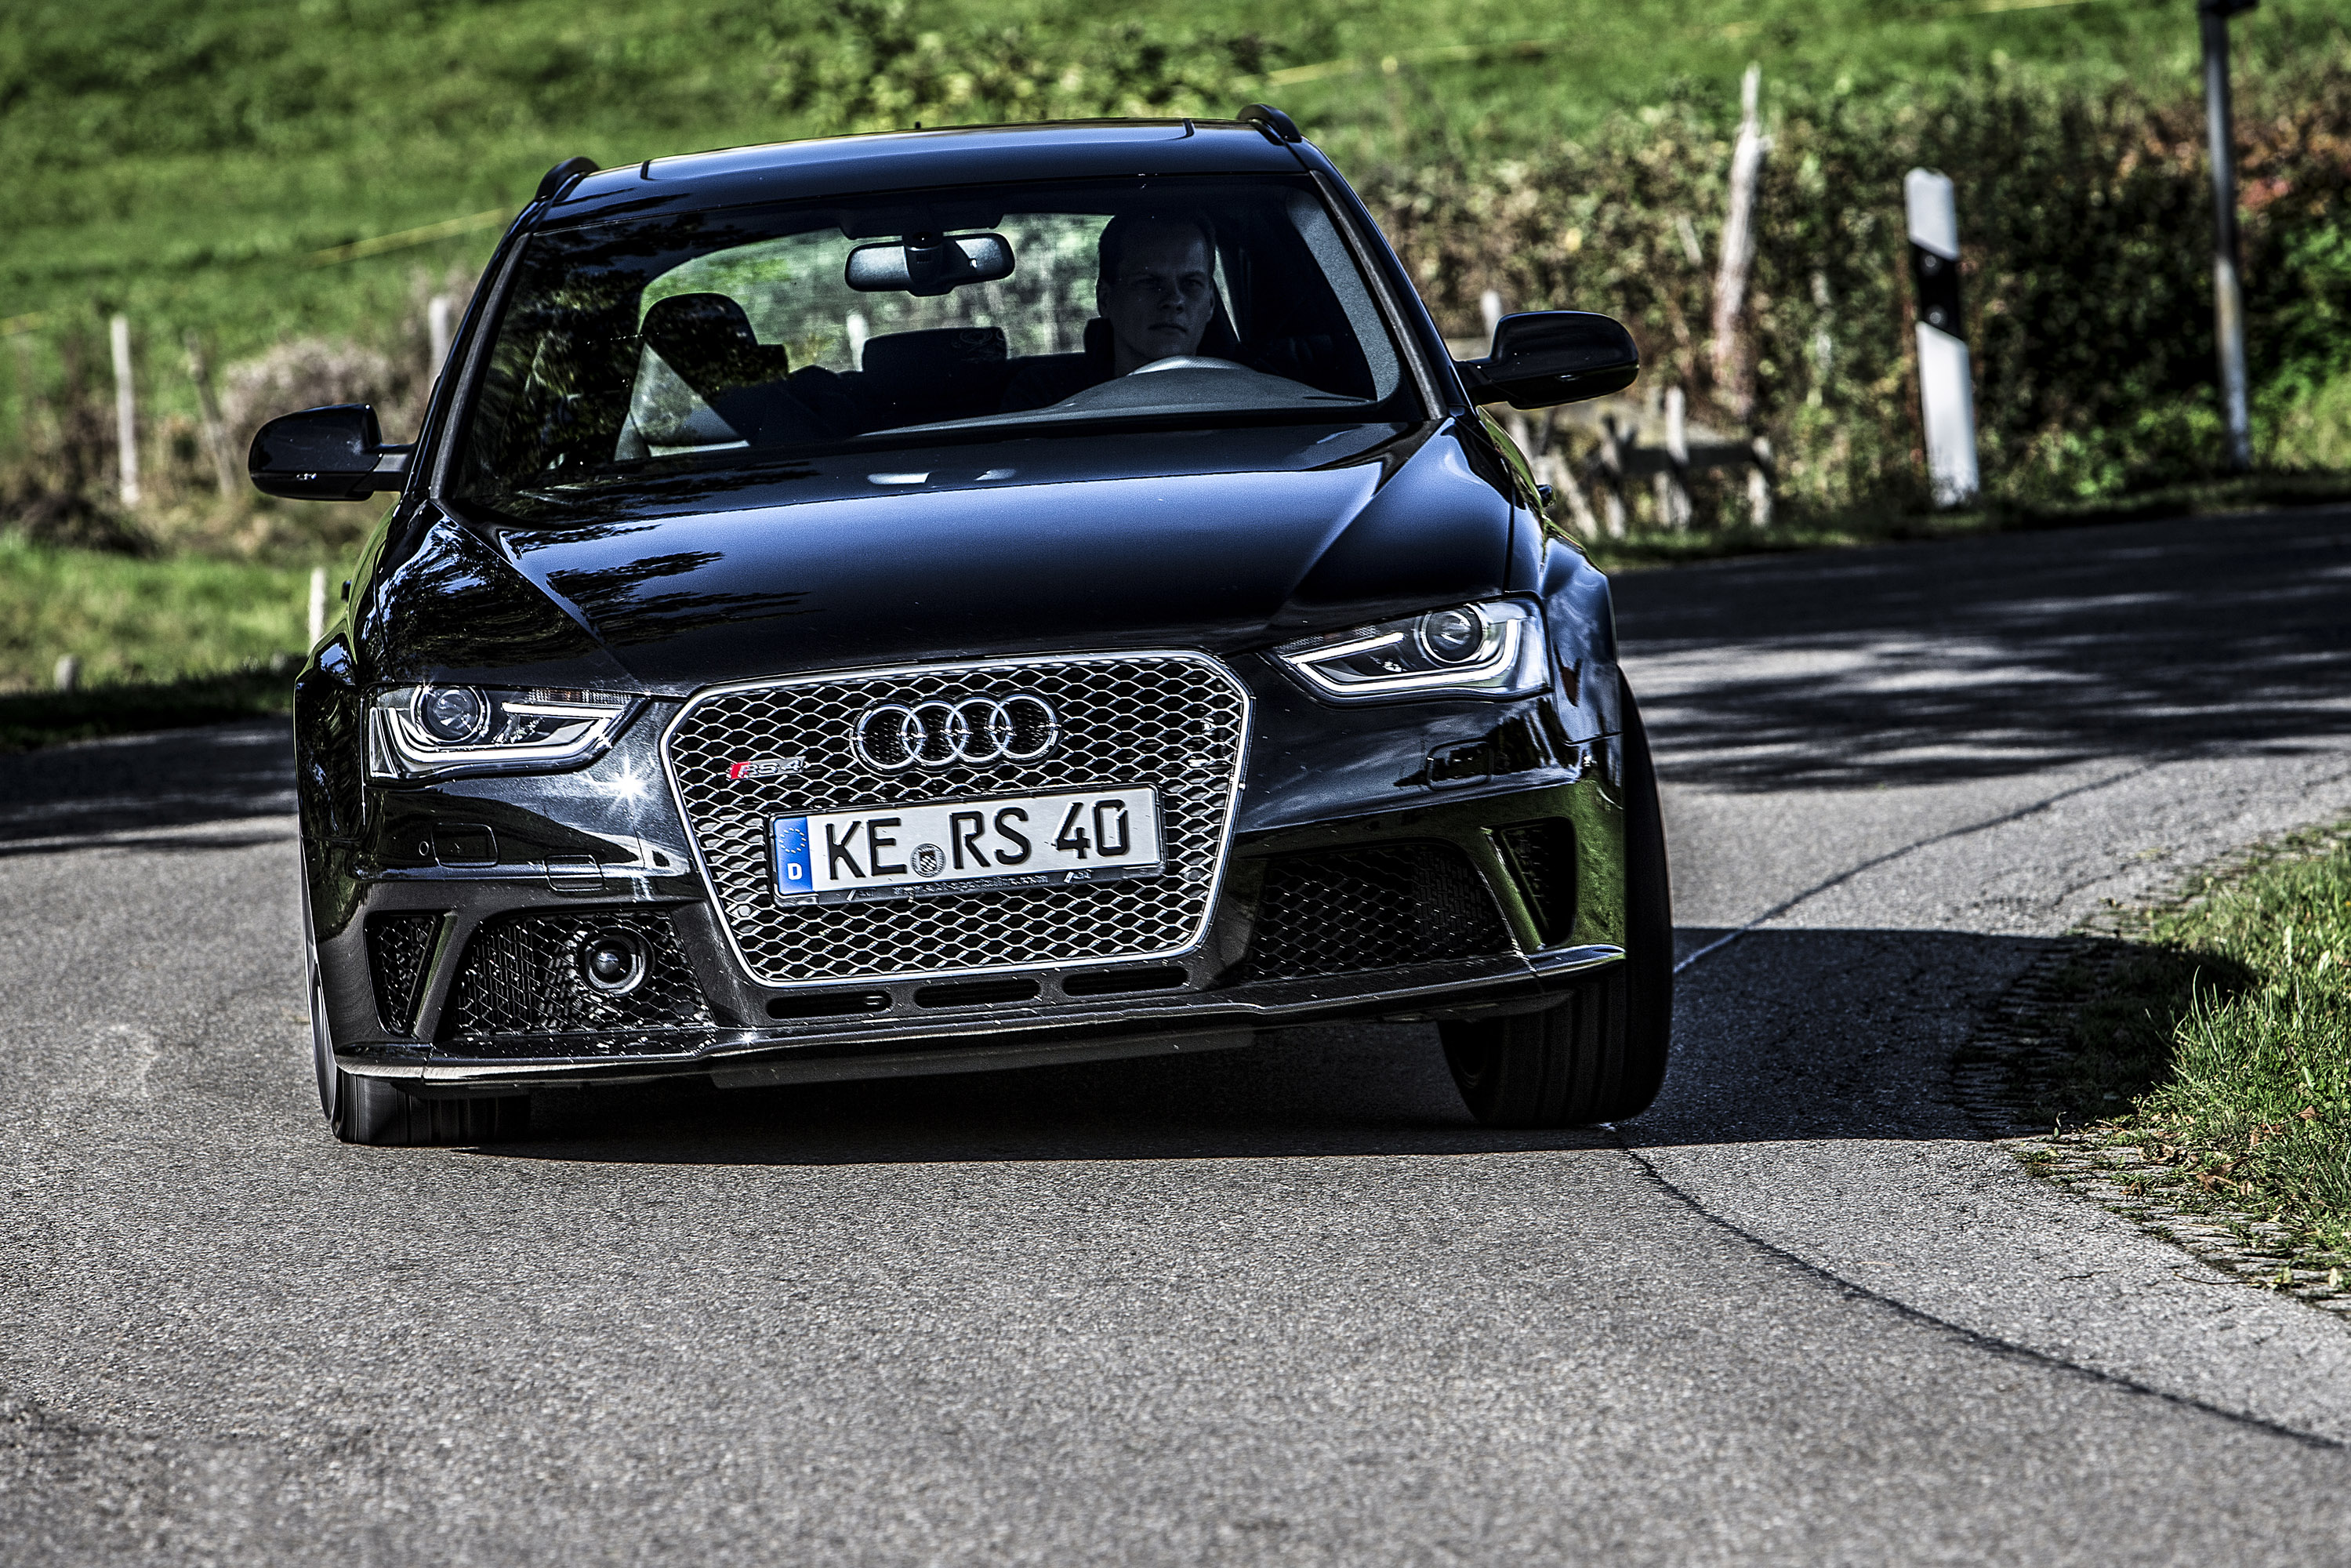 Abt 2012 Audi Rs4 Picture 78707